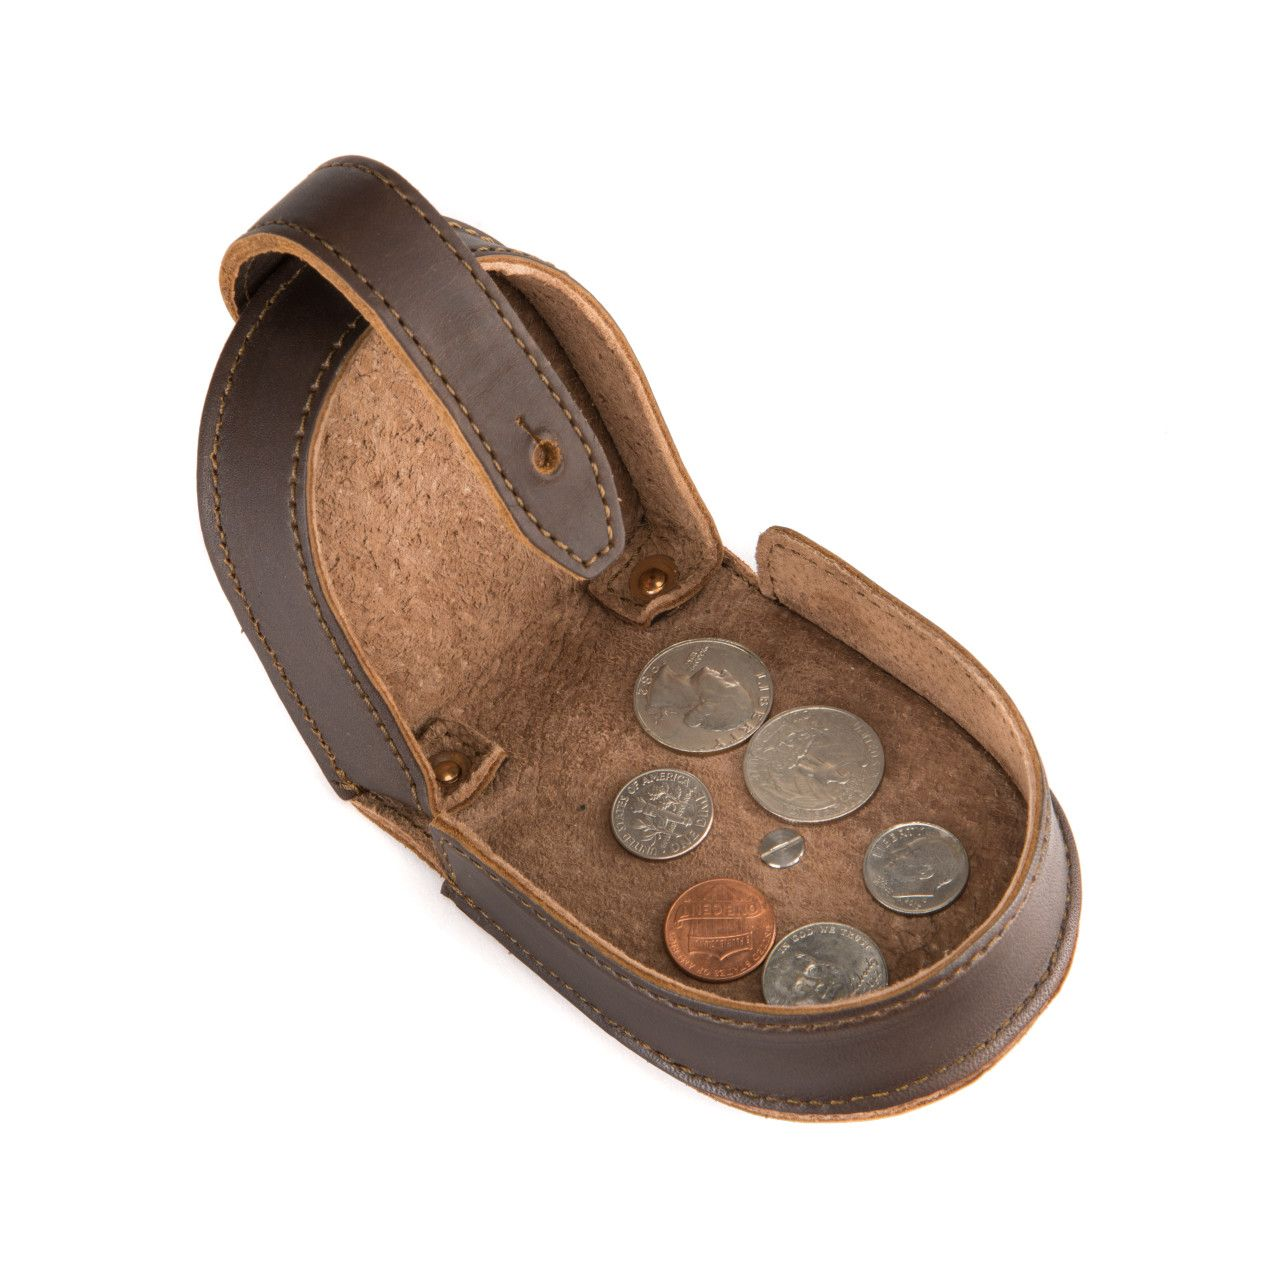 leather coin purse in dark coffee brown leather with fine coins